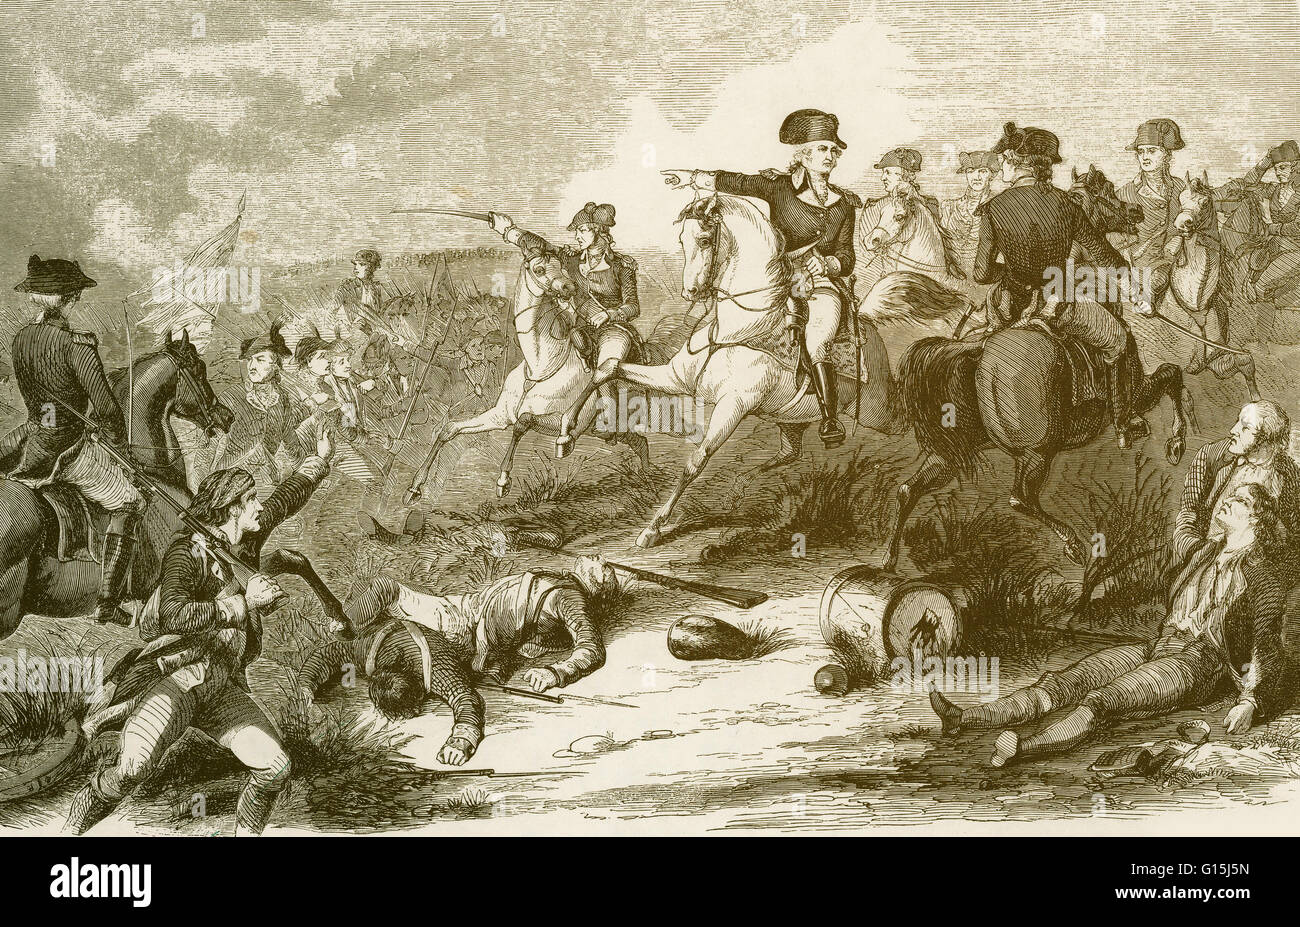 Enhanced 1858 illustration from 'Harper's Weekly' showing Washington taking over from Lee at Monmouth, - Stock Image